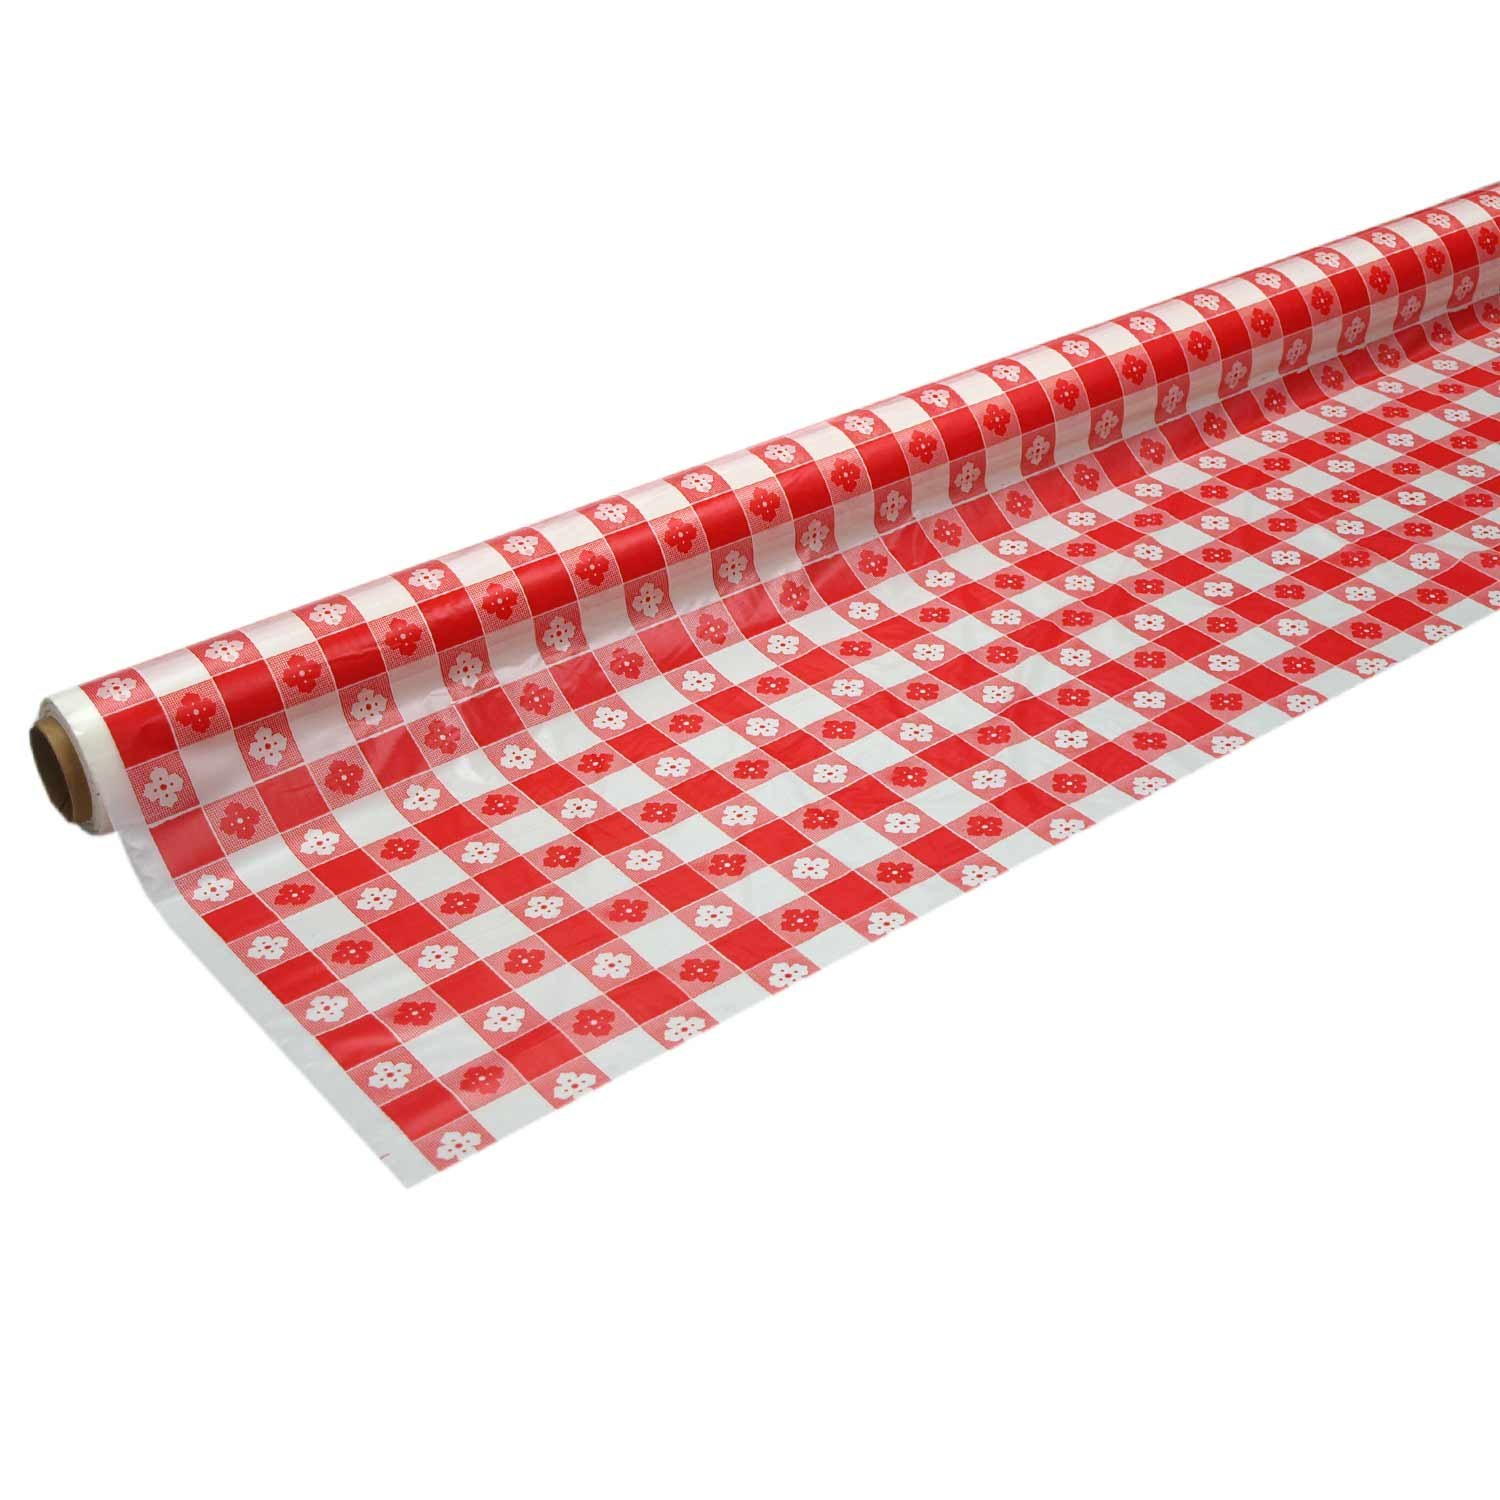 Party Essentials 4010 Heavy Duty Banquet Roll Plastic Tablecover, 100' Length x 40'' Width, Red Gingham Print (Case of 4)